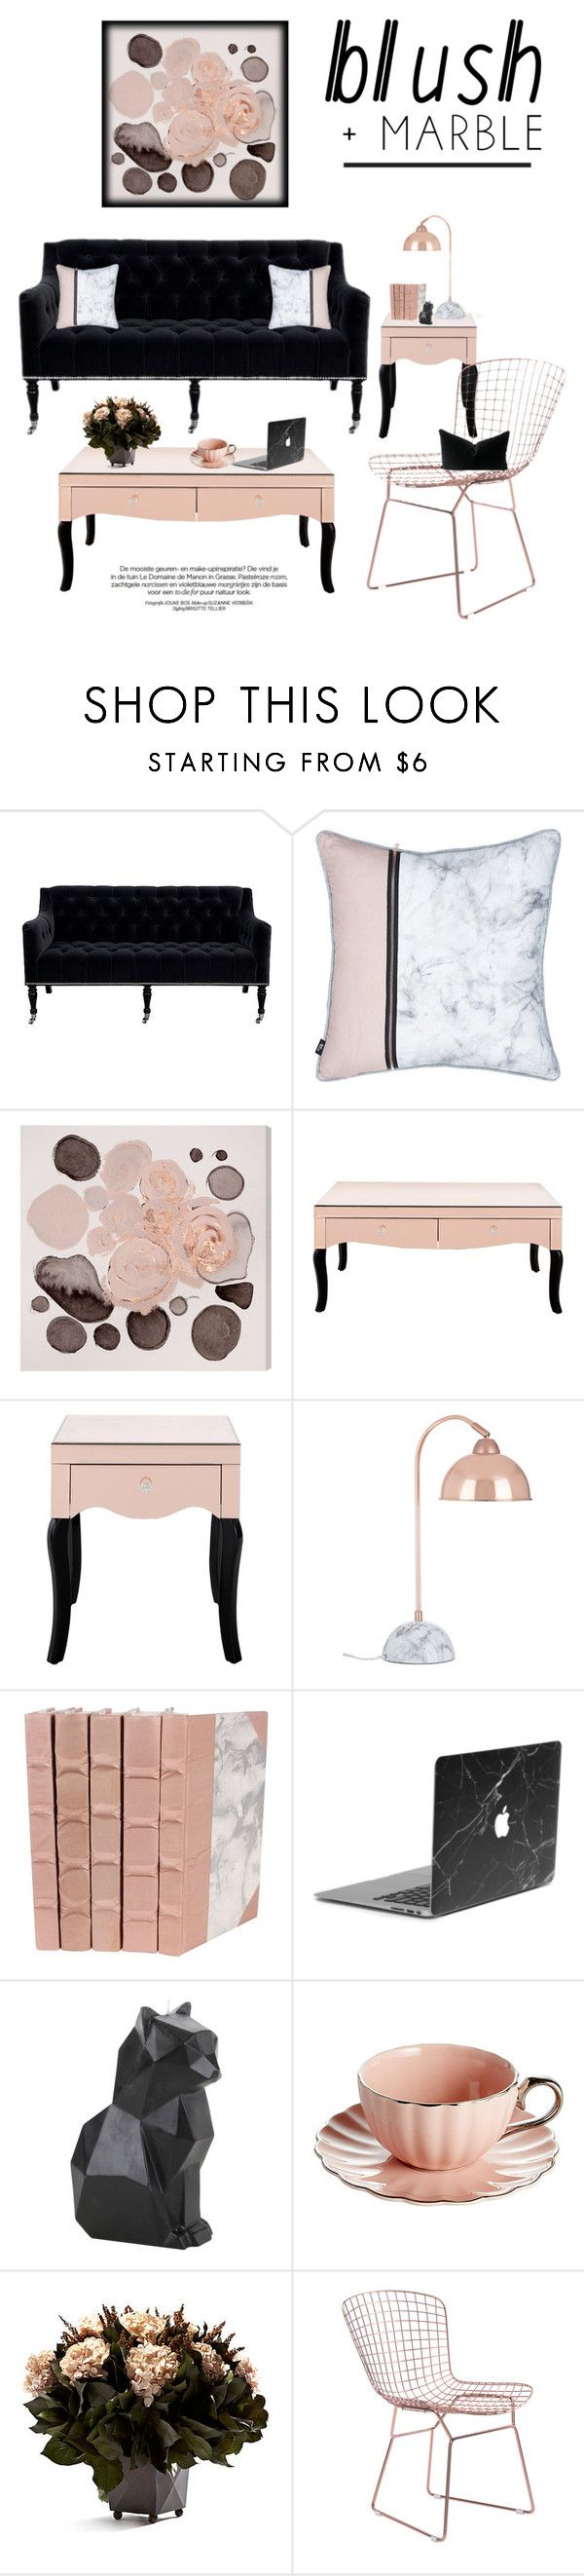 """Blushing Rose Gold & Black Velvet Marble"" by saifai ❤ liked on Polyvore featuring interior, interiors, interior design, home, home decor, interior decorating, Barclay Butera, Oliver Gal Artist Co., PyroPet and Bougainvillea"